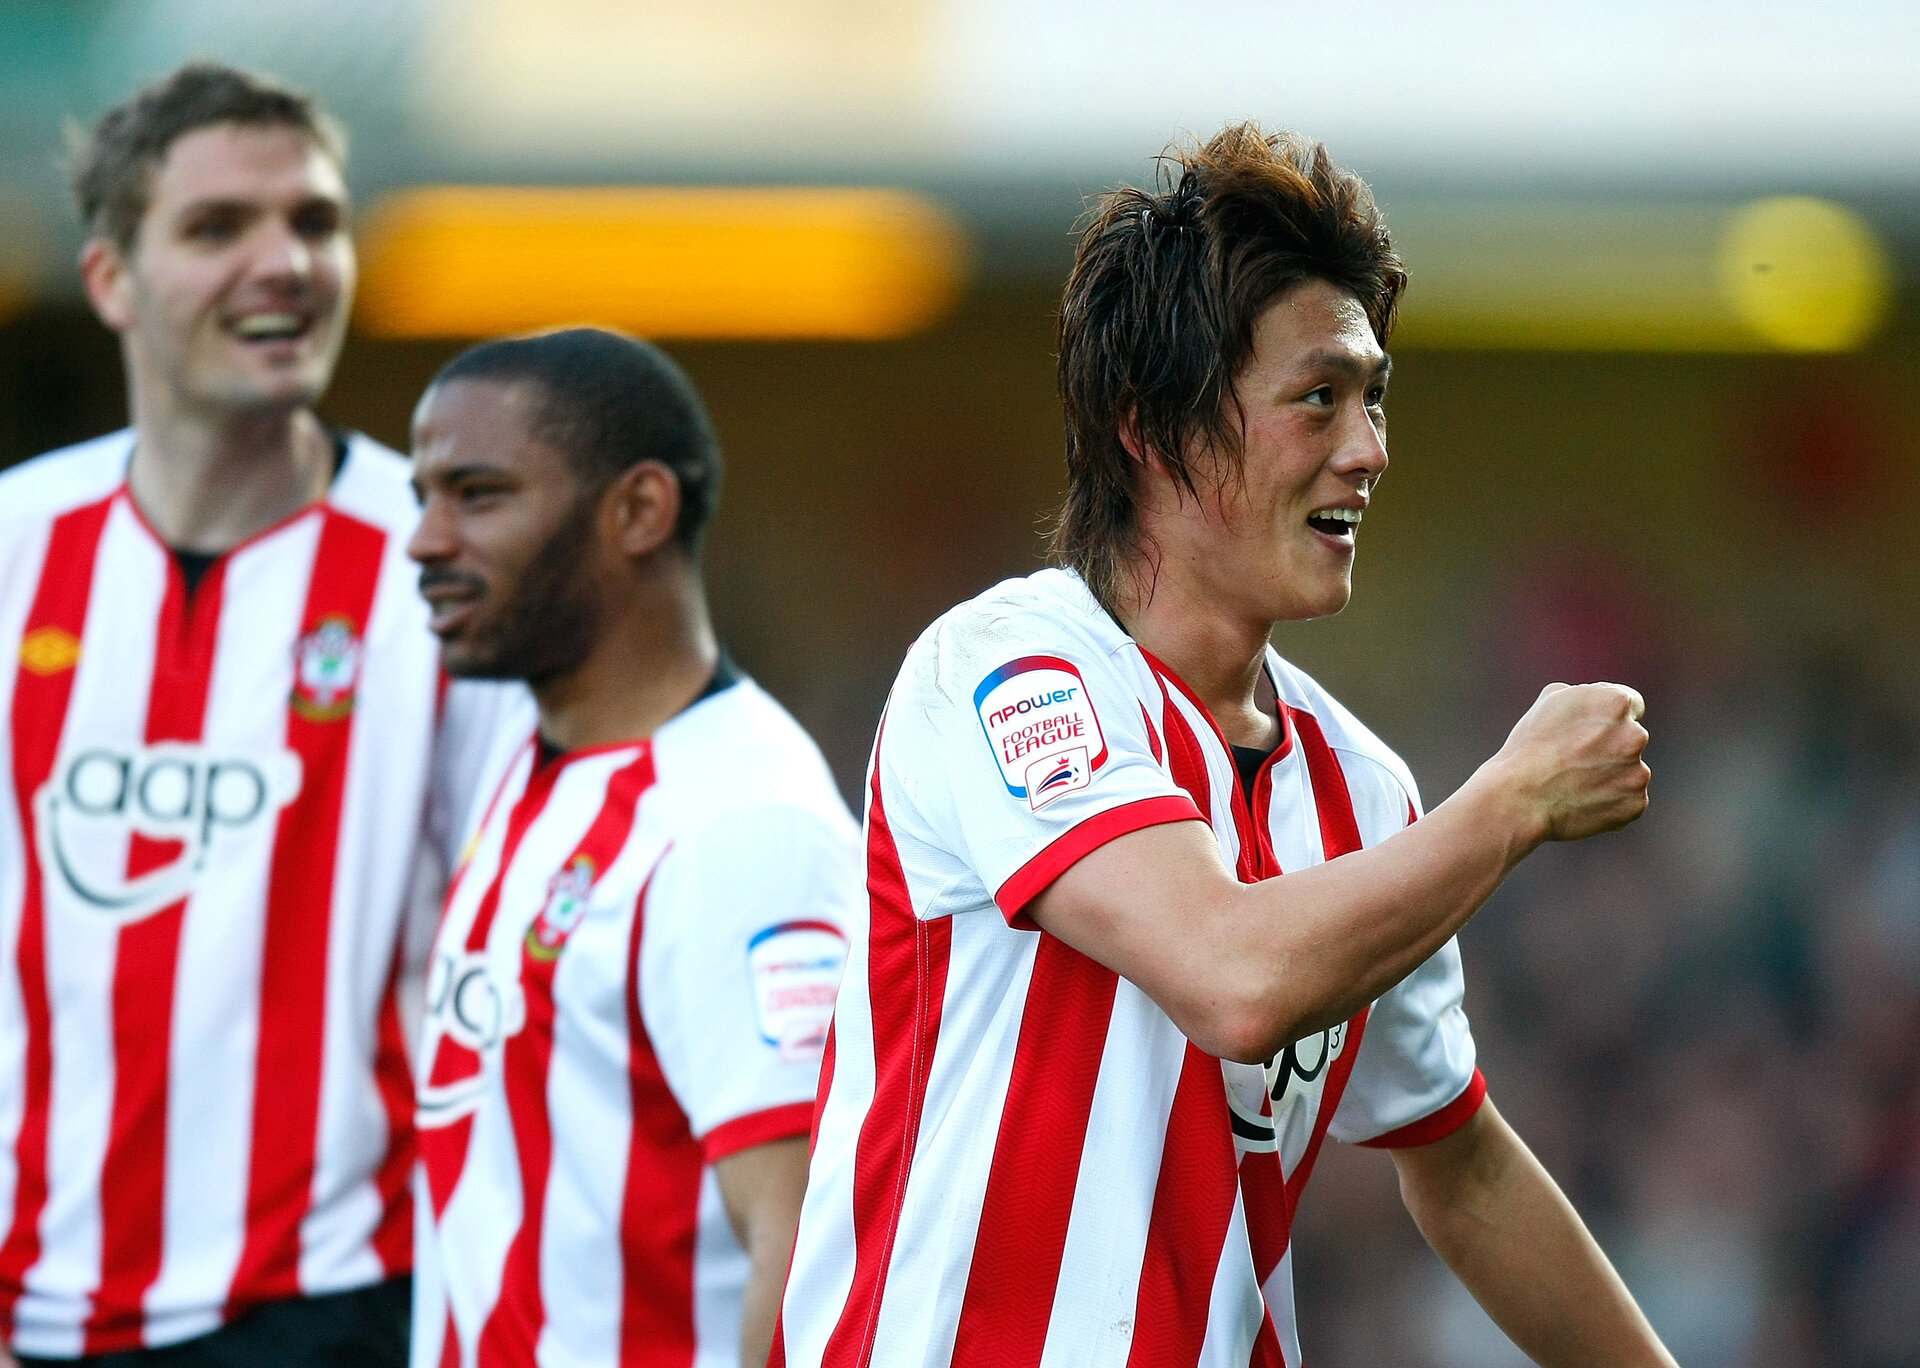 WATFORD, ENGLAND - FEBRUARY 25: Tadanari Lee of Southampton celebrates during the npower Championship match between Watford and Southampton at Vicarage Road on February 25, 2012 in Watford, England. (Photo by Tom Dulat/Getty Images)